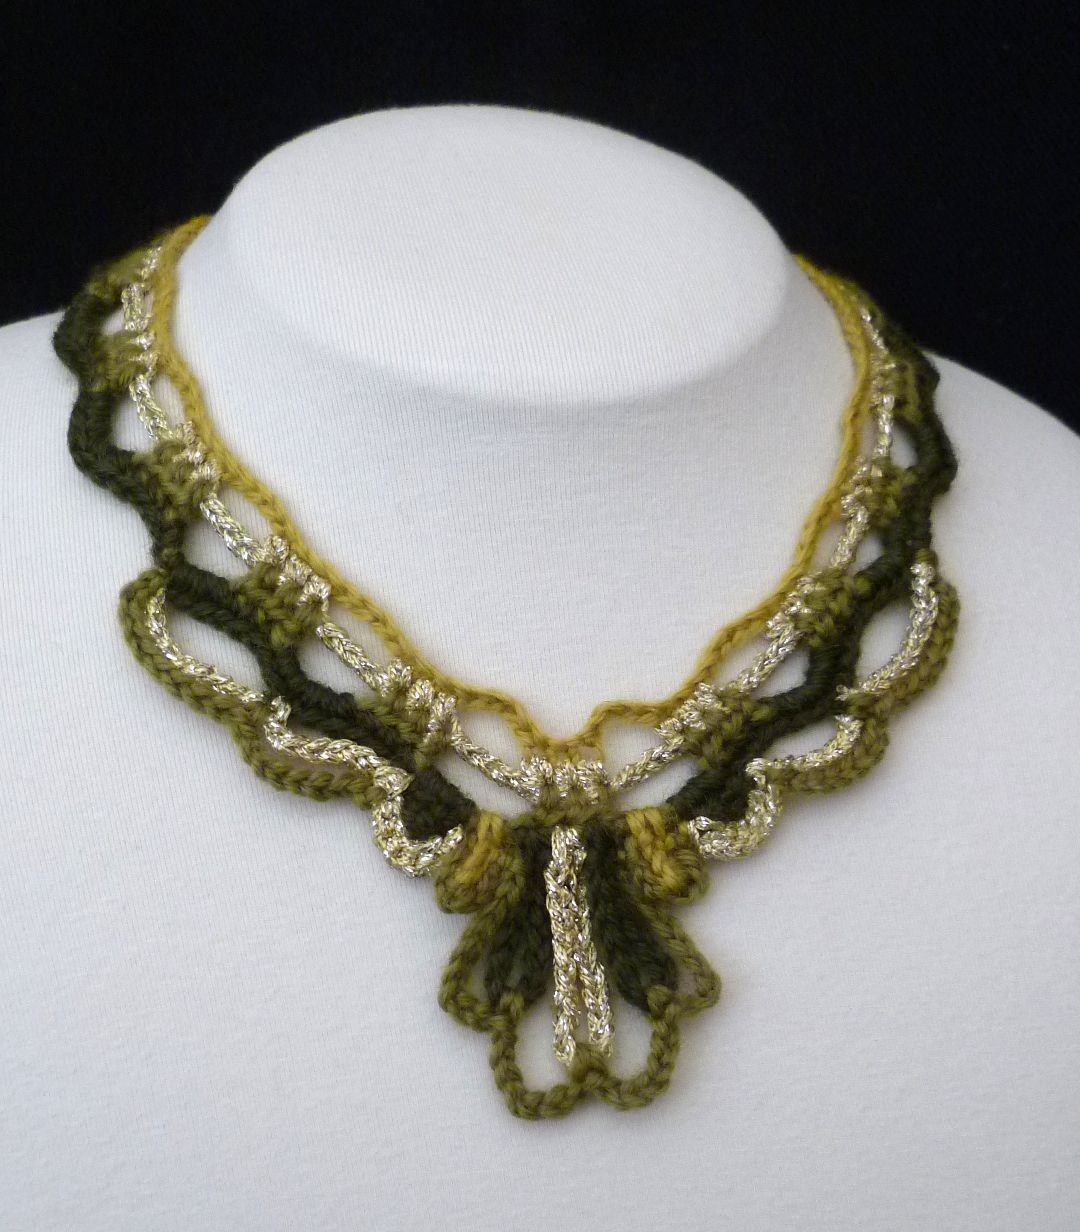 Crochet Necklace : Stitch Story: The Crawford Crochet Necklace Pattern, Now in US Terms!